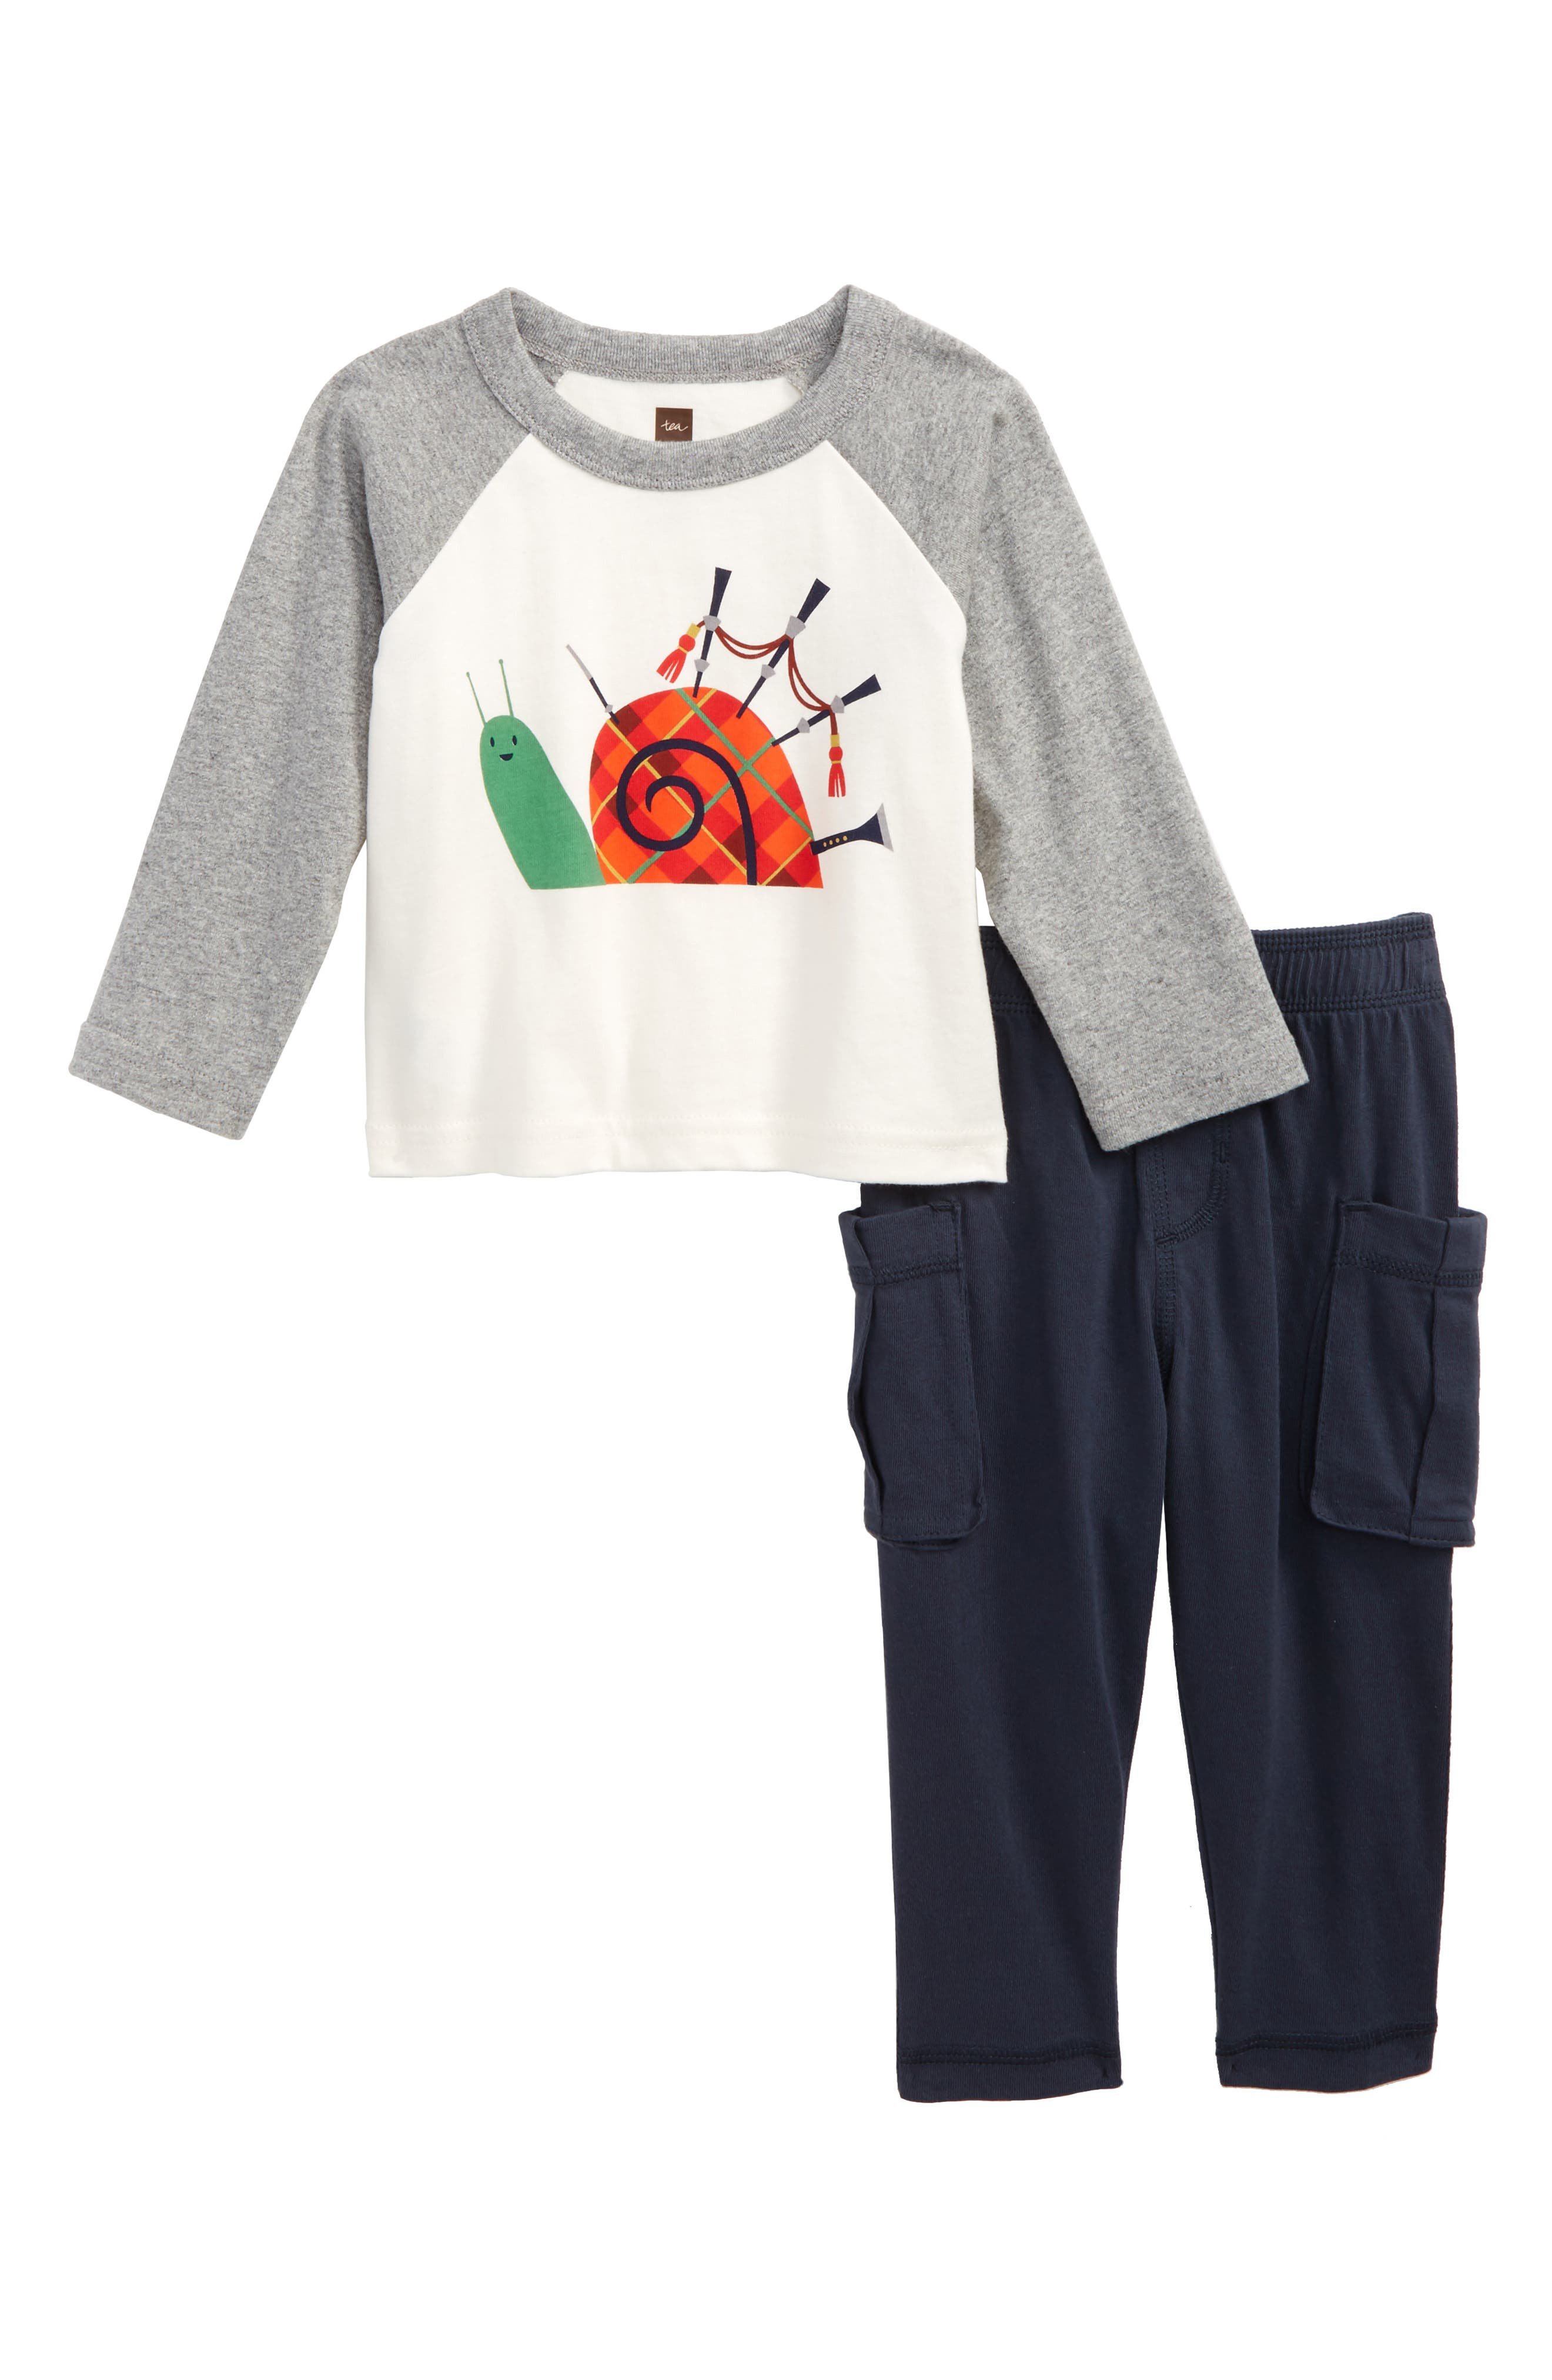 Main Image - Tea Collection Puck's Glen T-Shirt & Cargo Pants Set (Baby Boys & Toddler Boys)